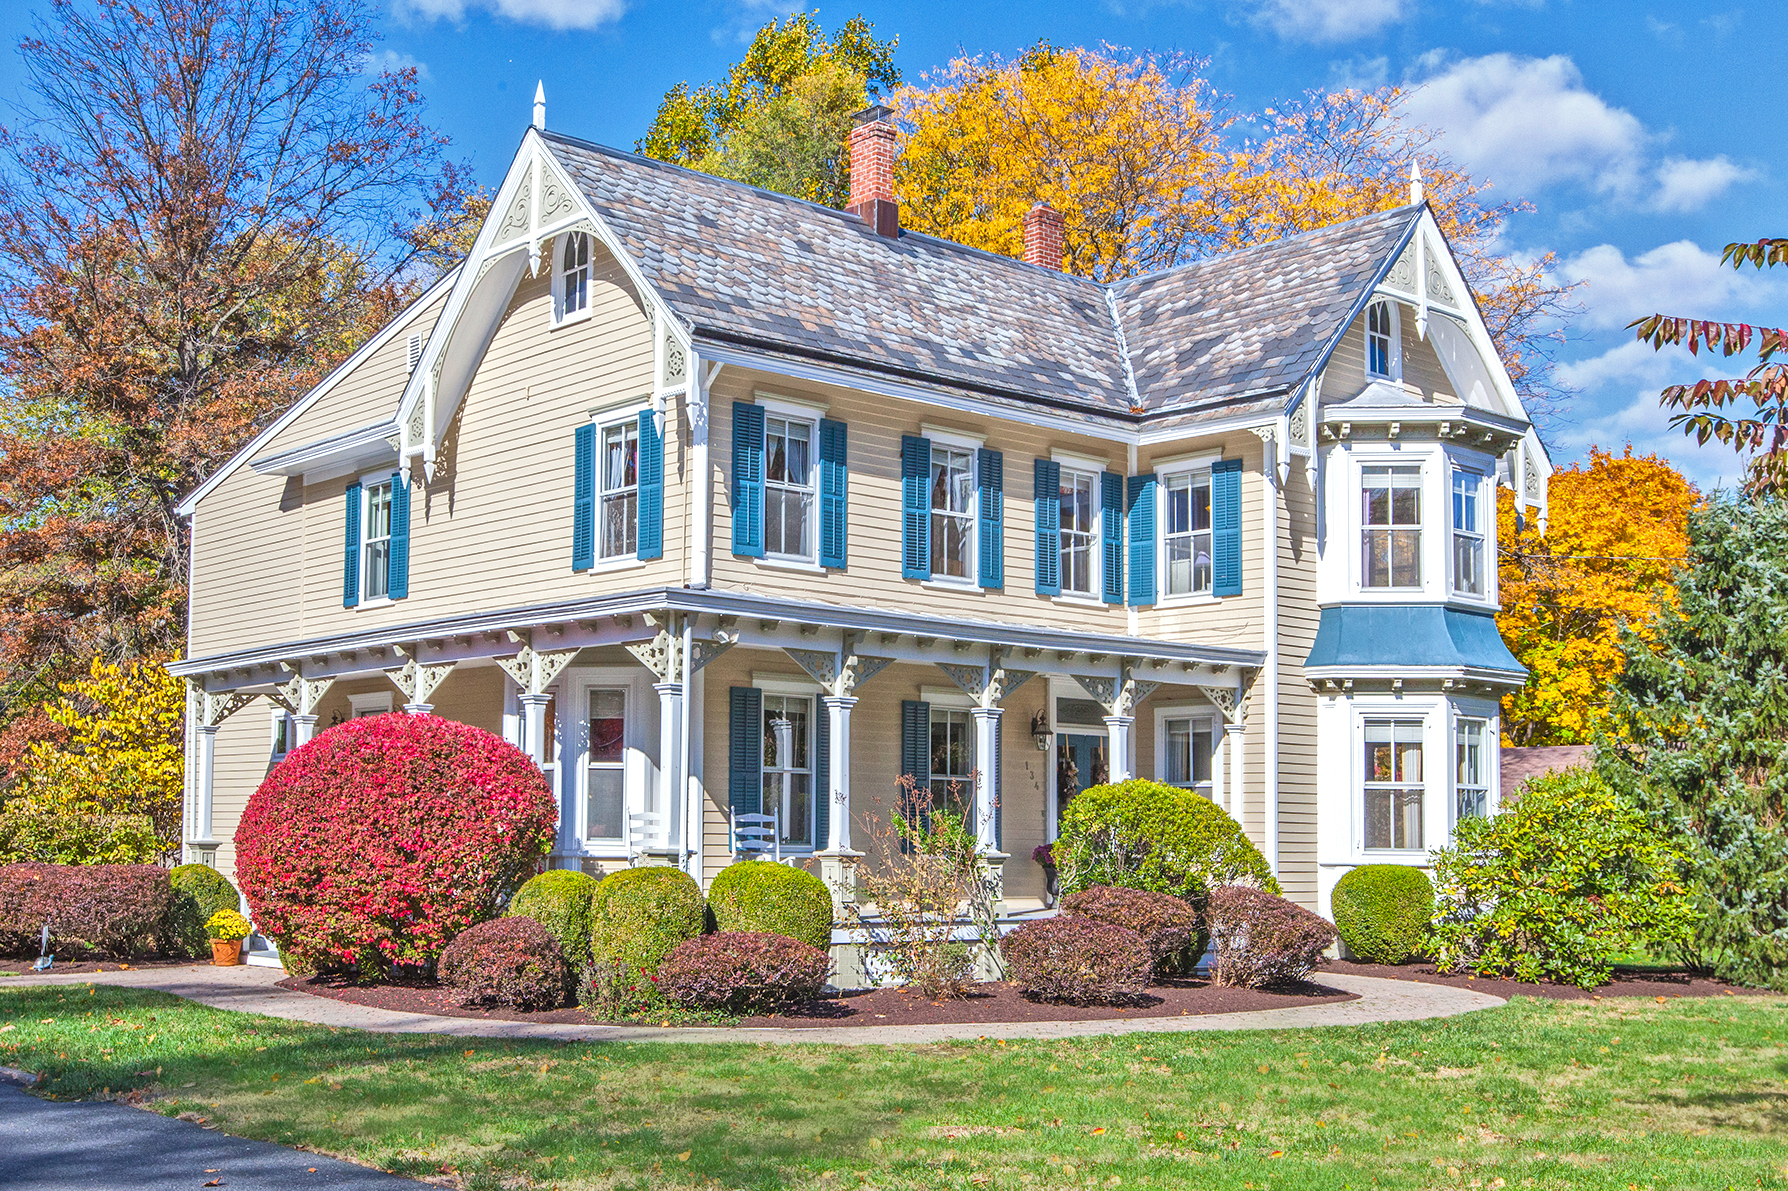 Casa Unifamiliar por un Venta en Renovated Victorian On Picturesque Grounds - West Windsor Township 134 South Mill Road Princeton Junction, Nueva Jersey, 08550 Estados Unidos